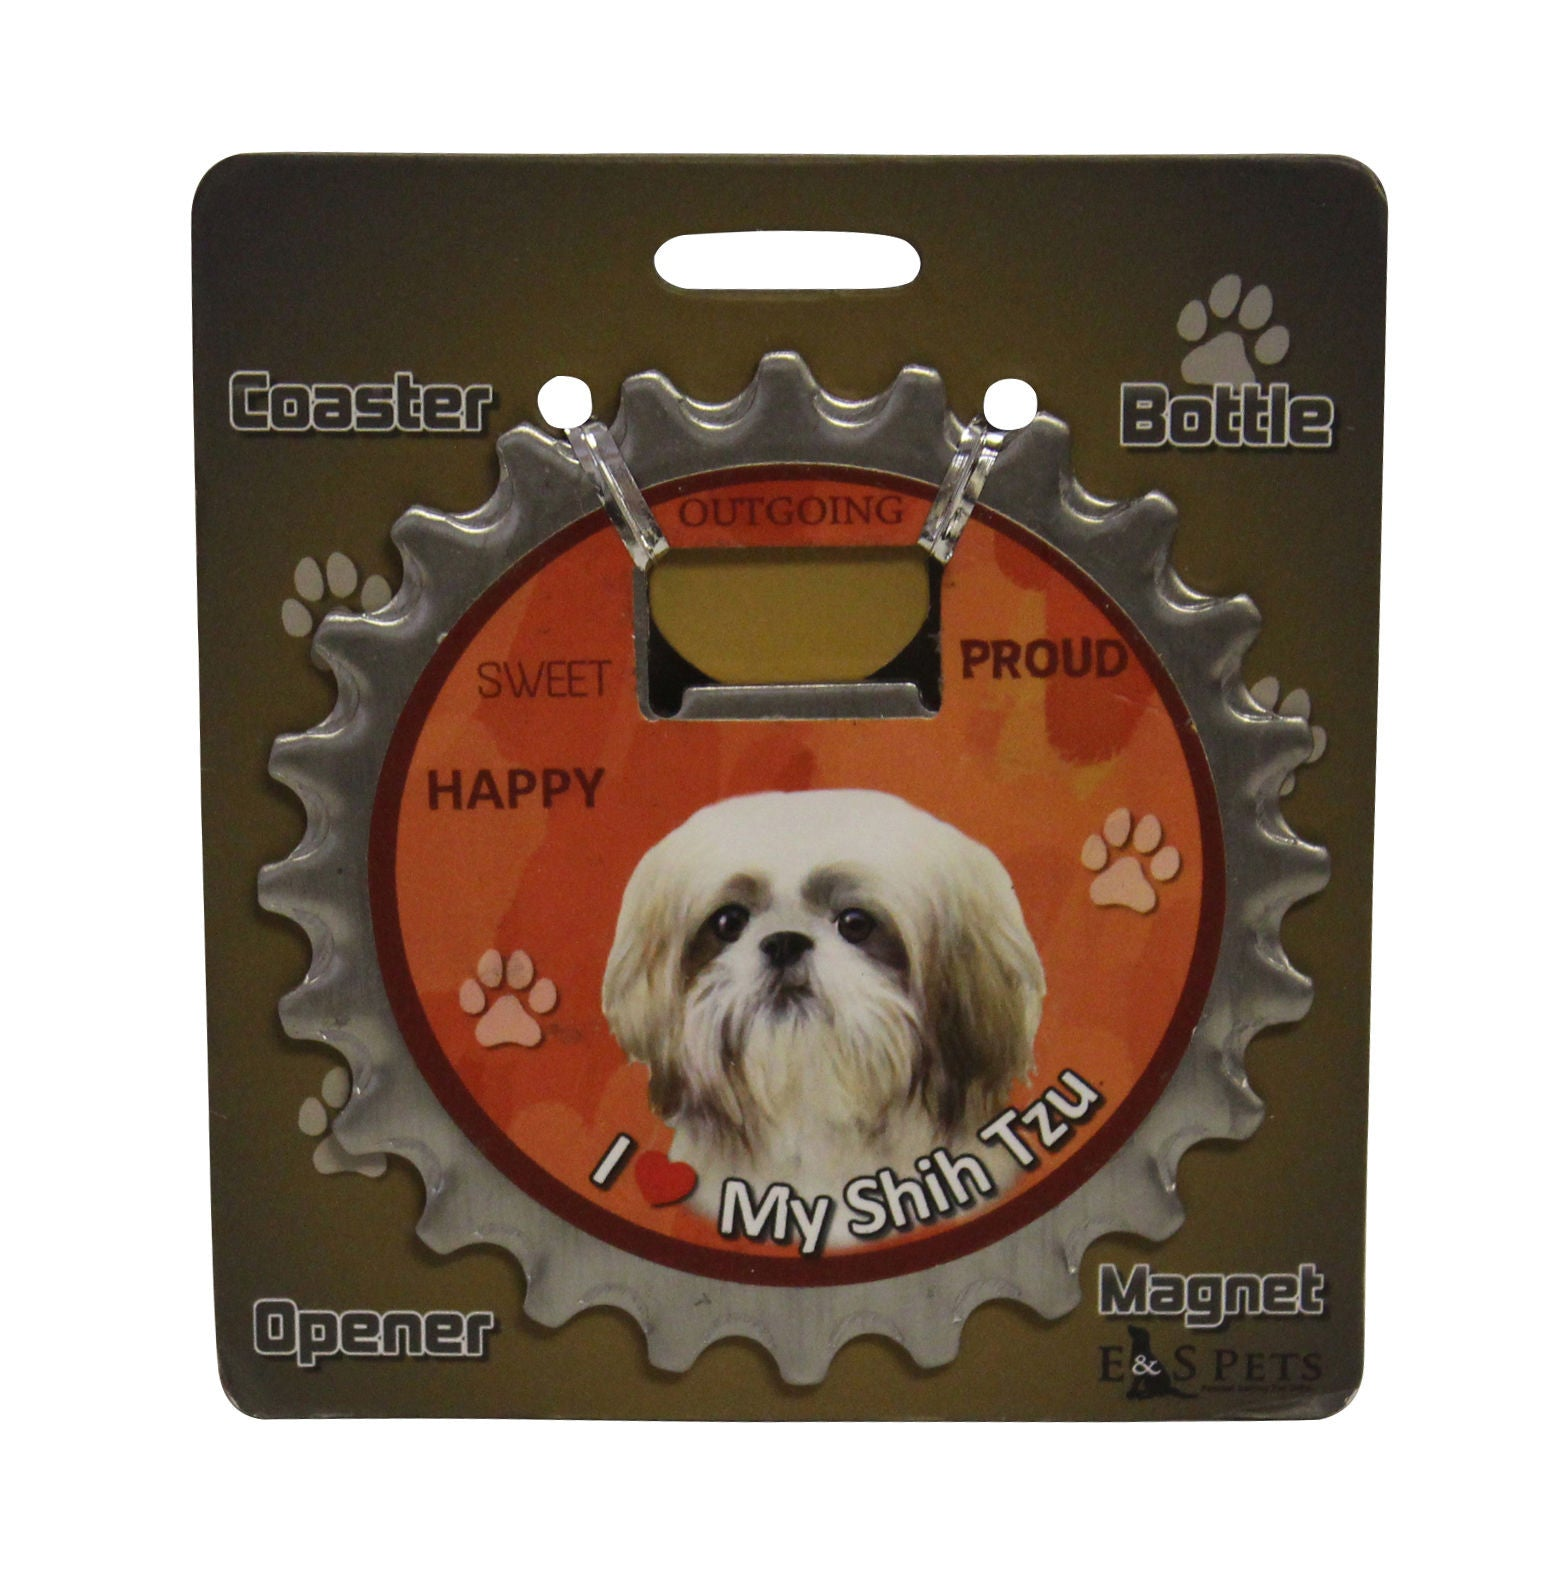 Shih Tzu Tan Puppy Dog Bottle Ninja Stainless Steel Opener Magnet